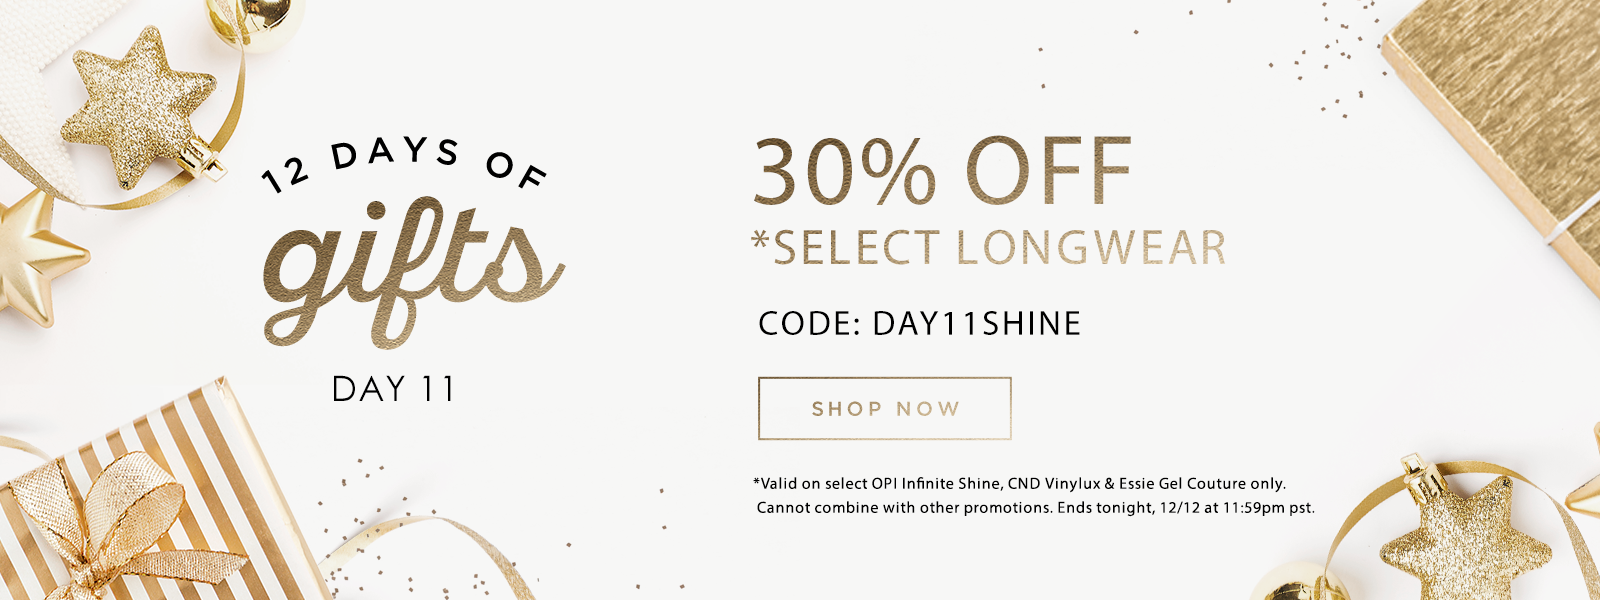 12 Days of Gifts: Day 11 - 30% Off Select Longwear